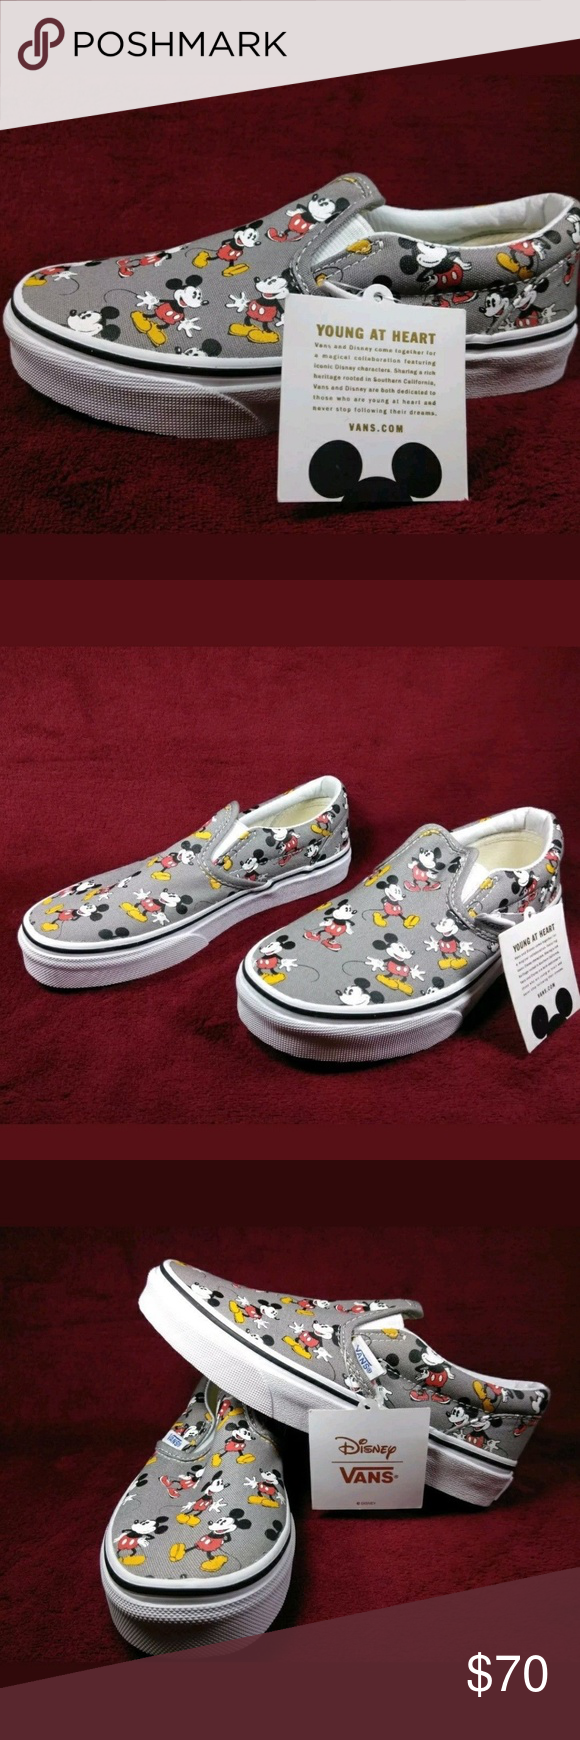 8602101c6159 Mickey Mouse Vans Size 1.5 Kids Slip On No laces Brand new Vans size 1.5 for